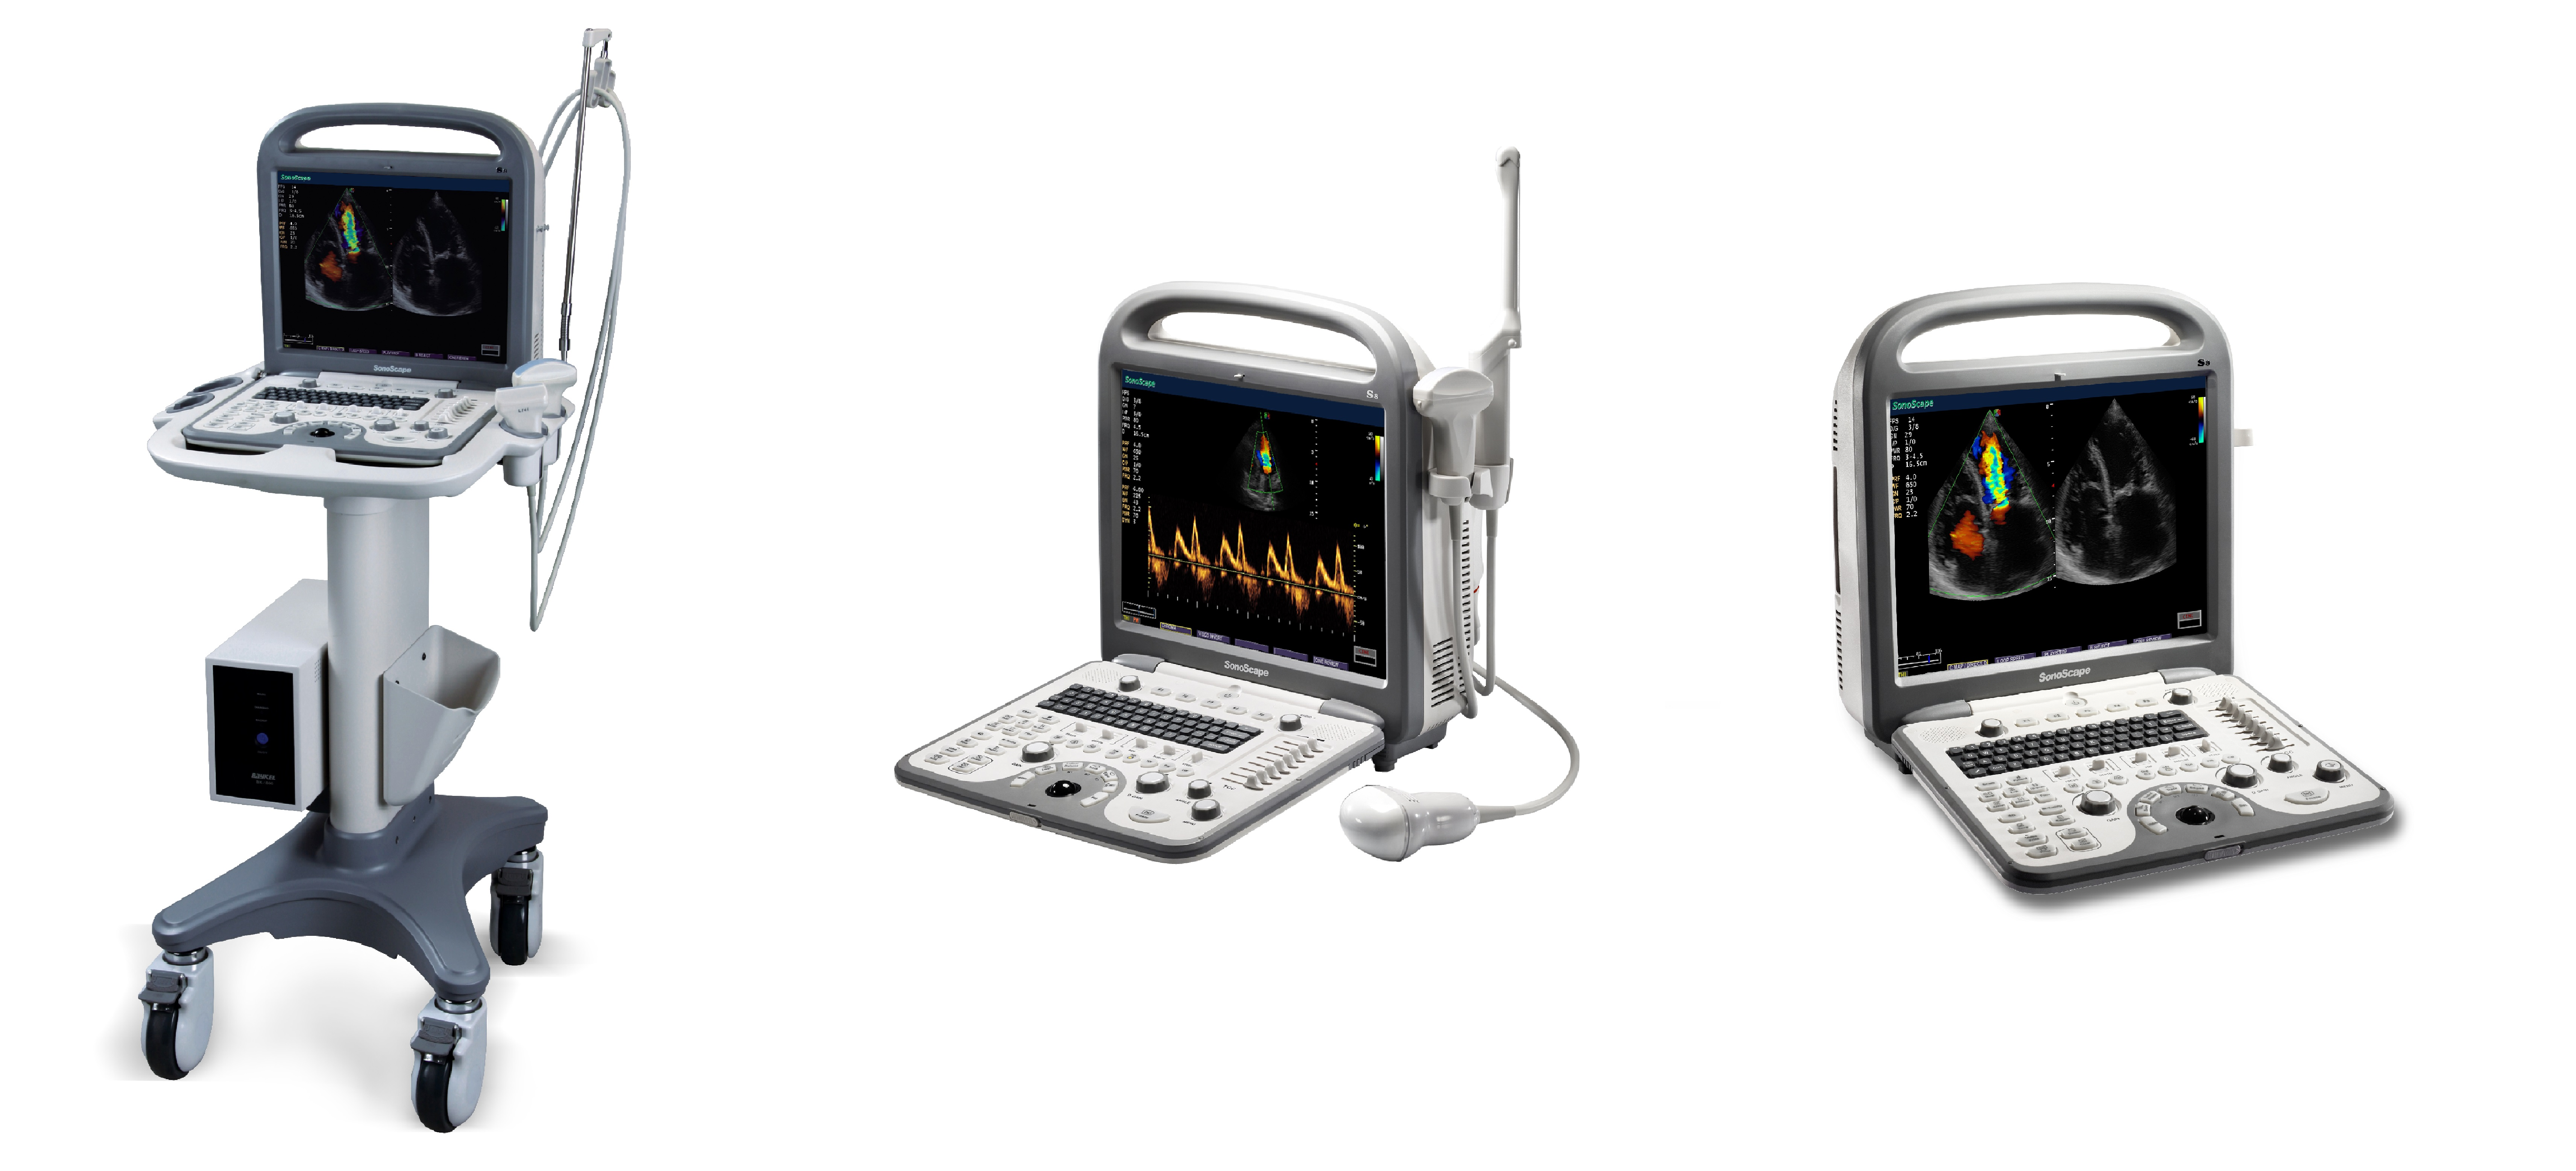 Echographe Portable Doppler Couleur S8 presentation